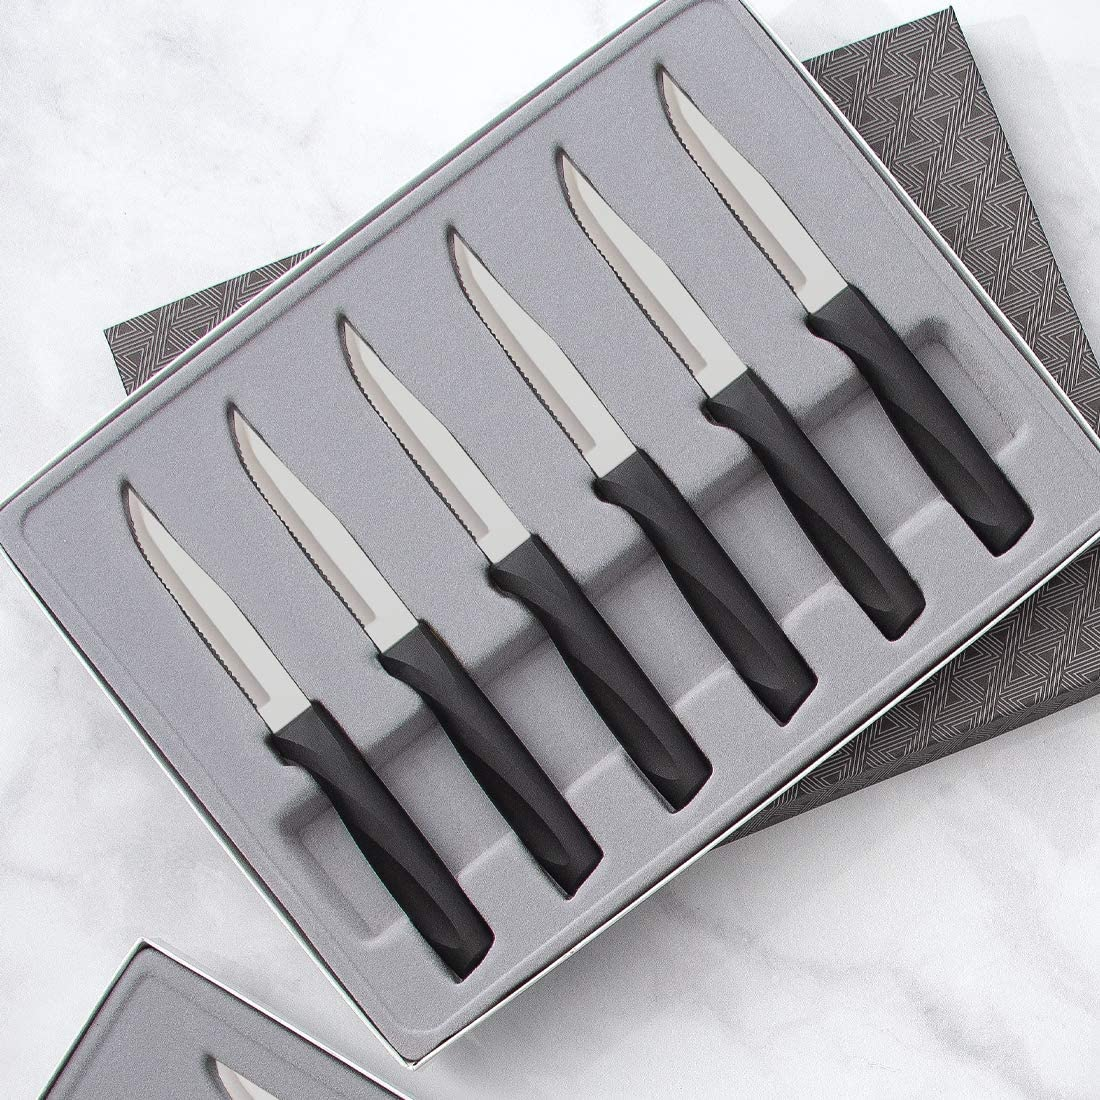 Rada Cutlery Anthem Series Serrated Knife Set Stainless Steel Dining Steak Knives with Ergonomic Black Resin Handles, Set of 6